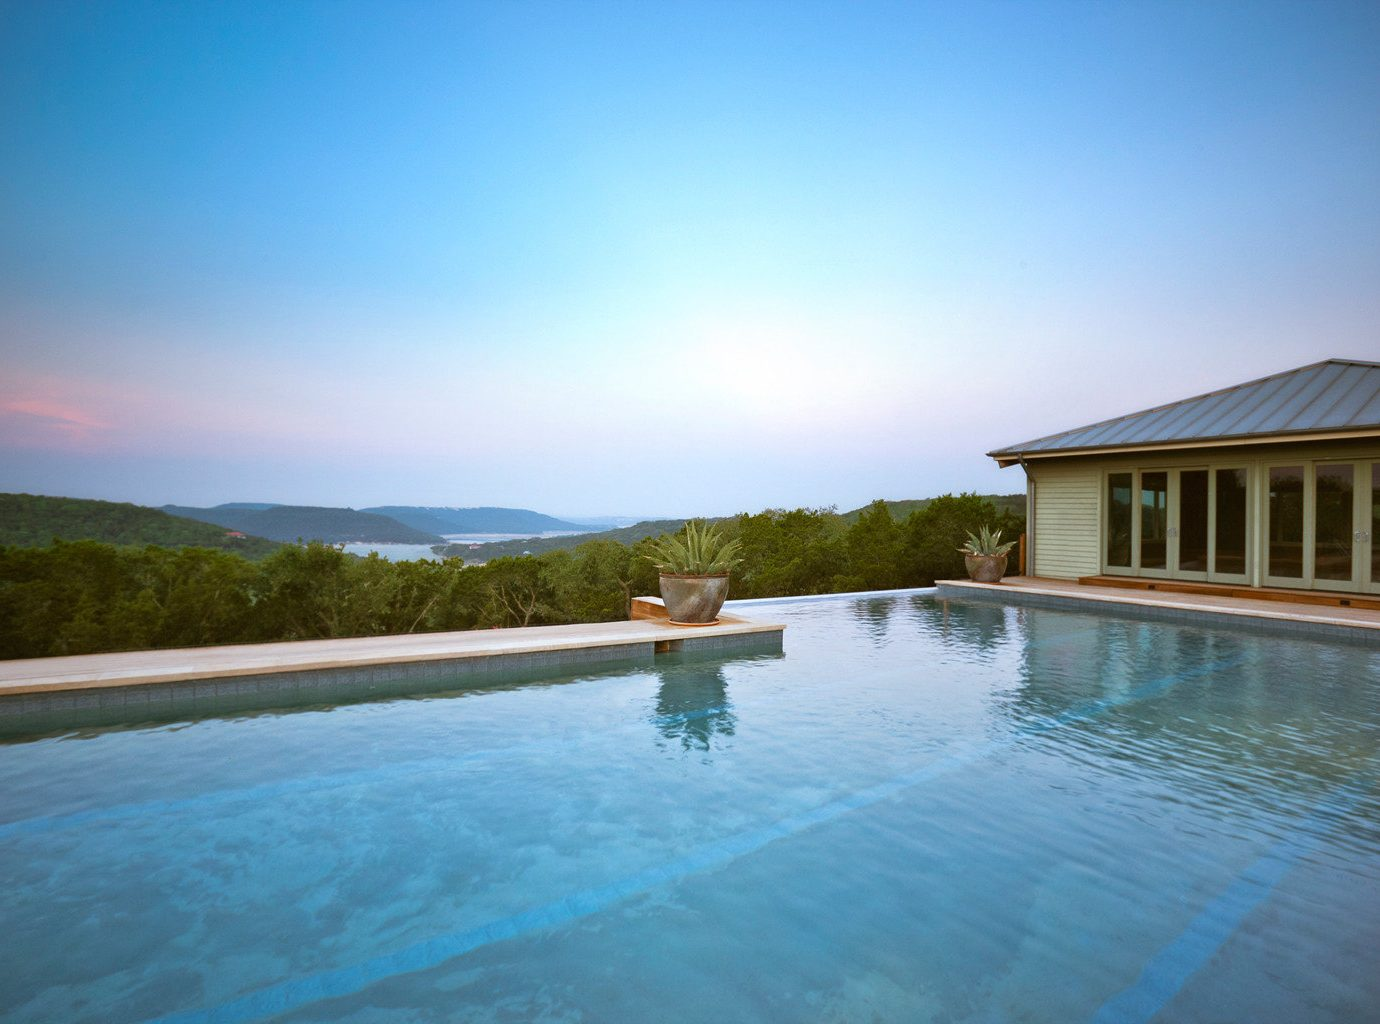 Hotels water sky outdoor Nature swimming pool property estate vacation house Pool Lake reflection Sea Lagoon Resort shore swimming